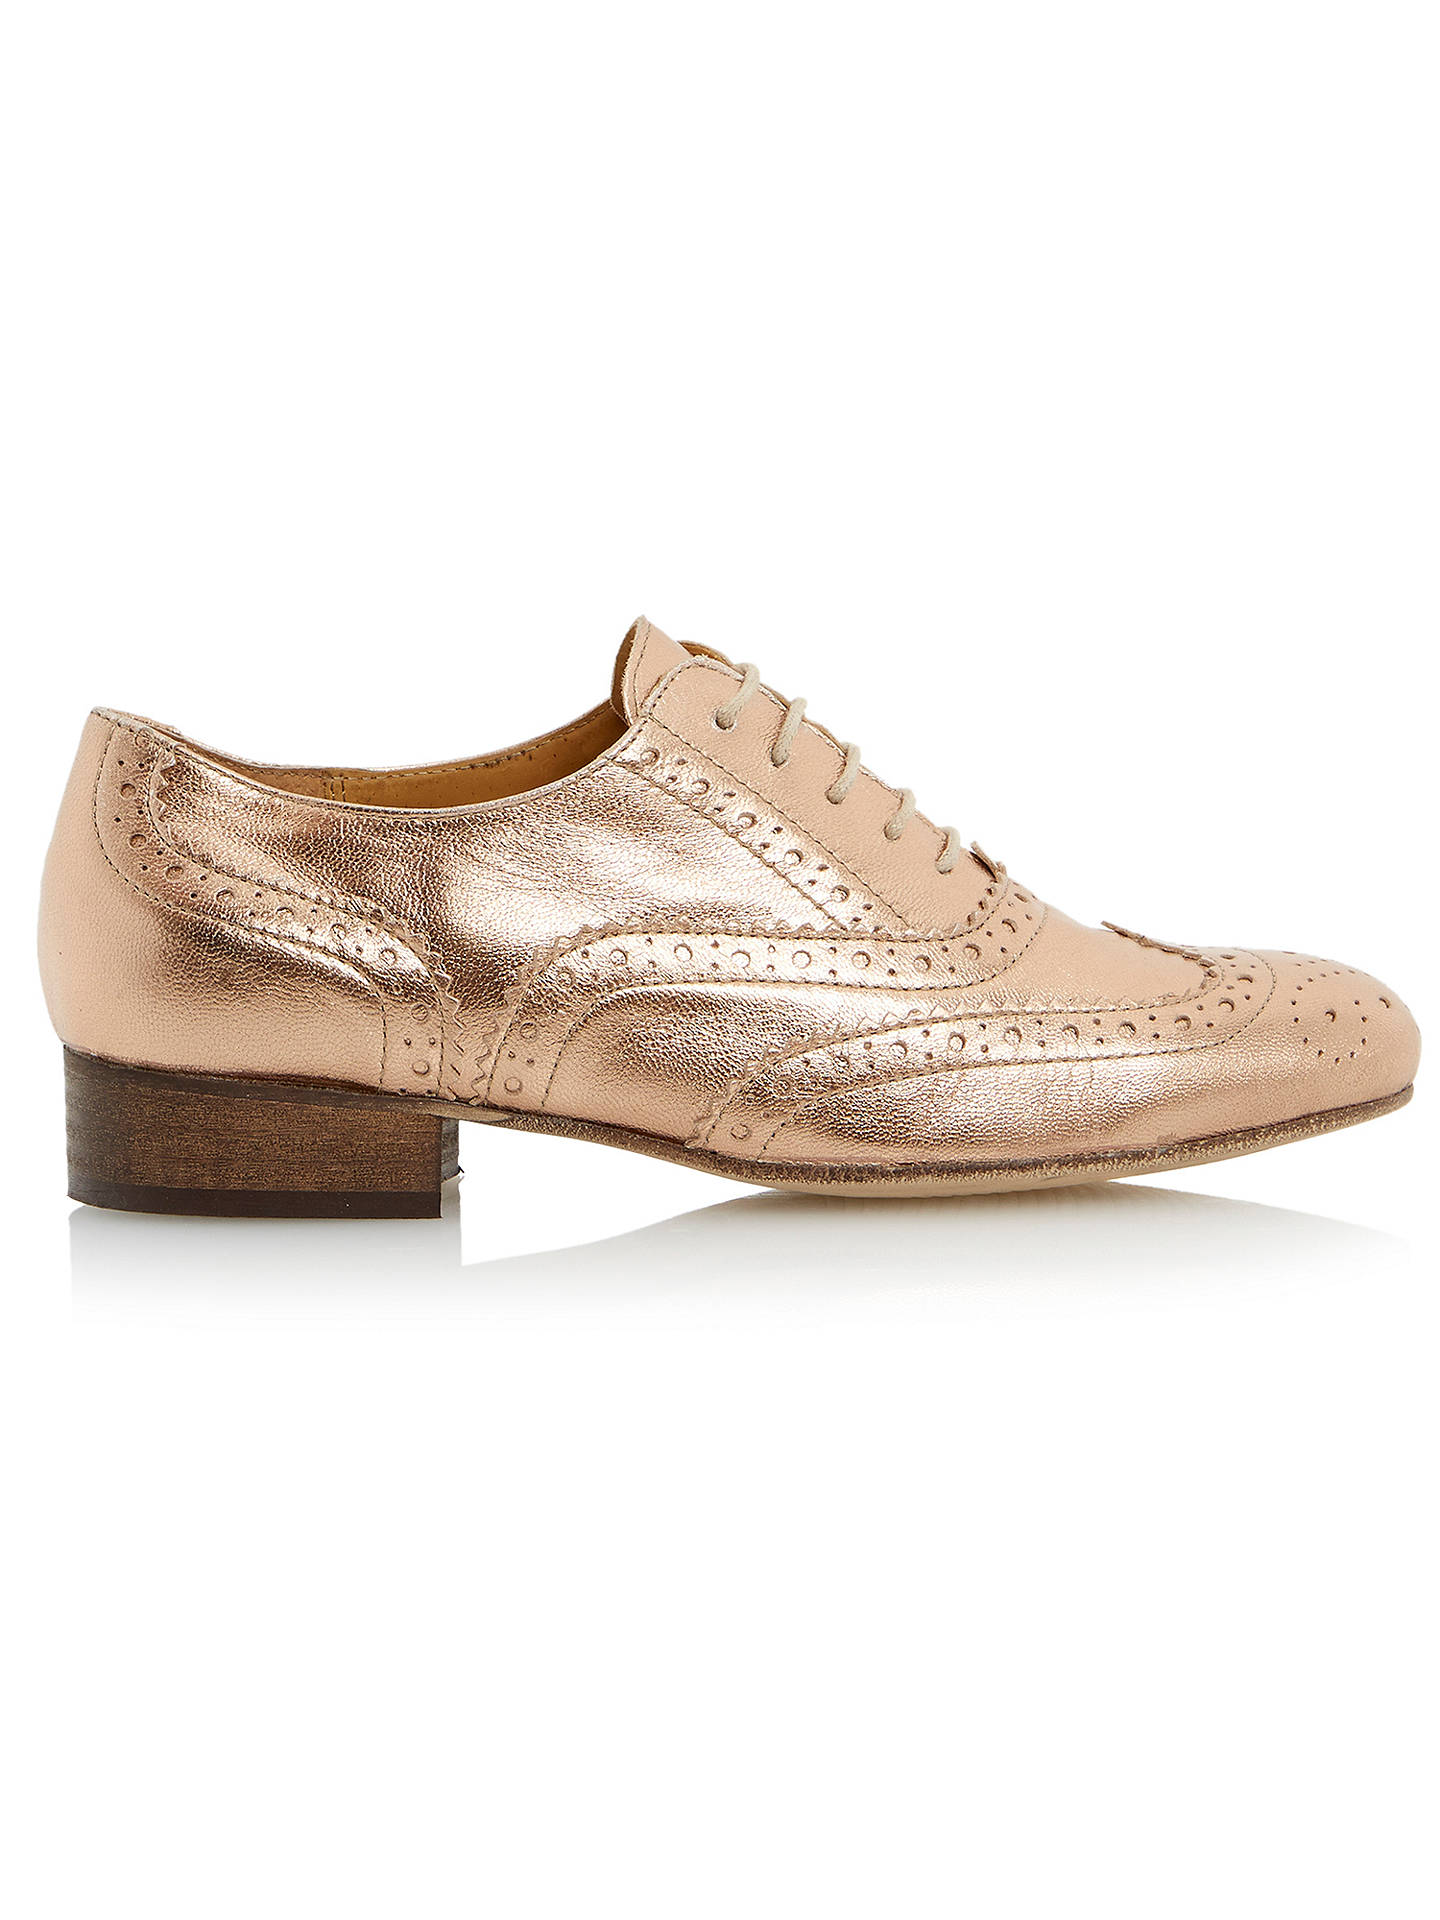 Clarks Gold Metallic Leather ladies shoes//flats//brogues 2//34-3//35.5 BMWB